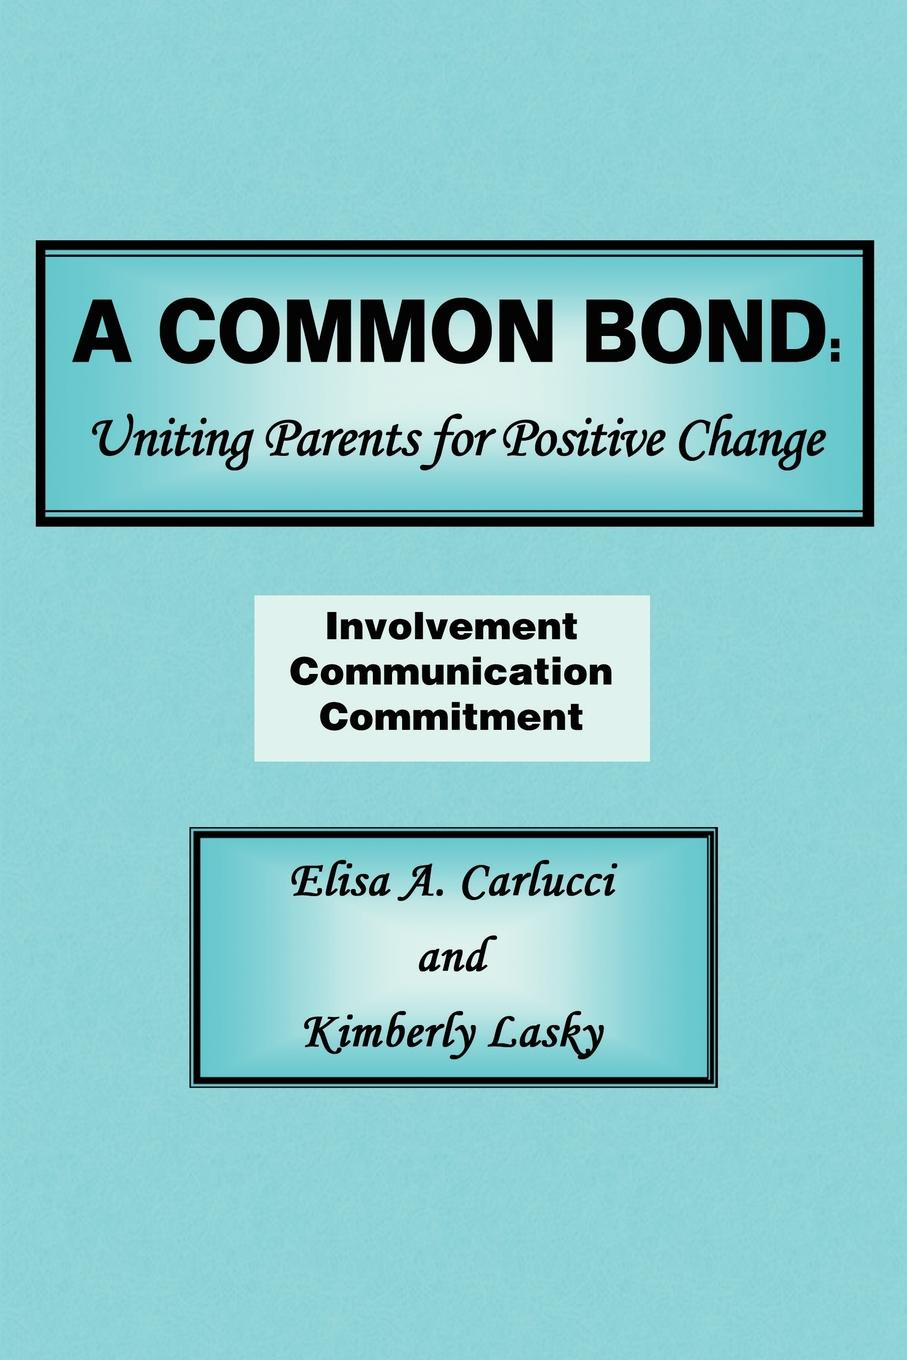 Elisa A. Carlucci A Common Bond. Uniting Parents for Positive Change sinbo svc 3495 синий